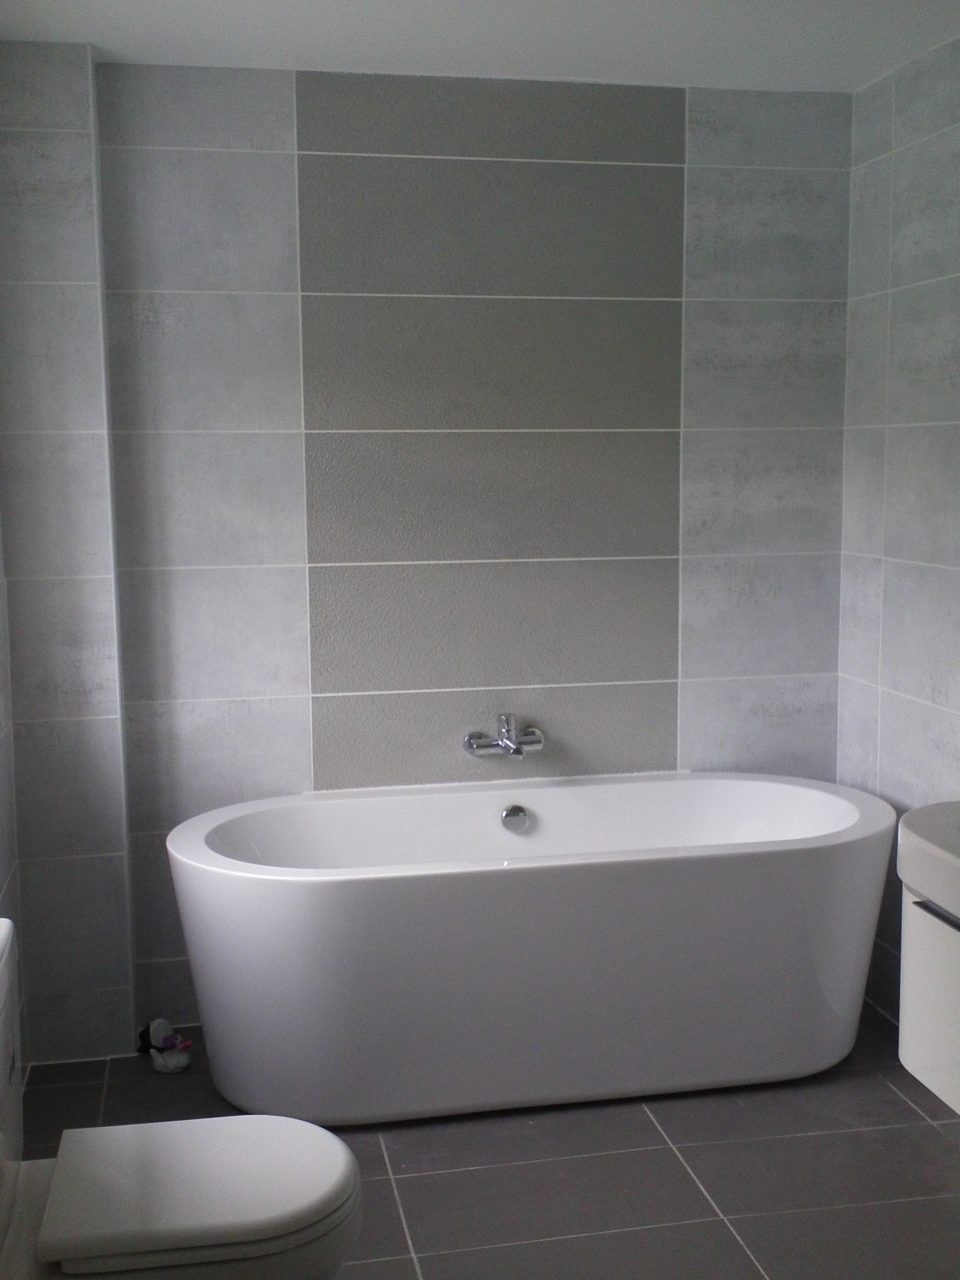 Inspiring Small Bathroom Color Ideas With Grey Wall Tiled As Well As